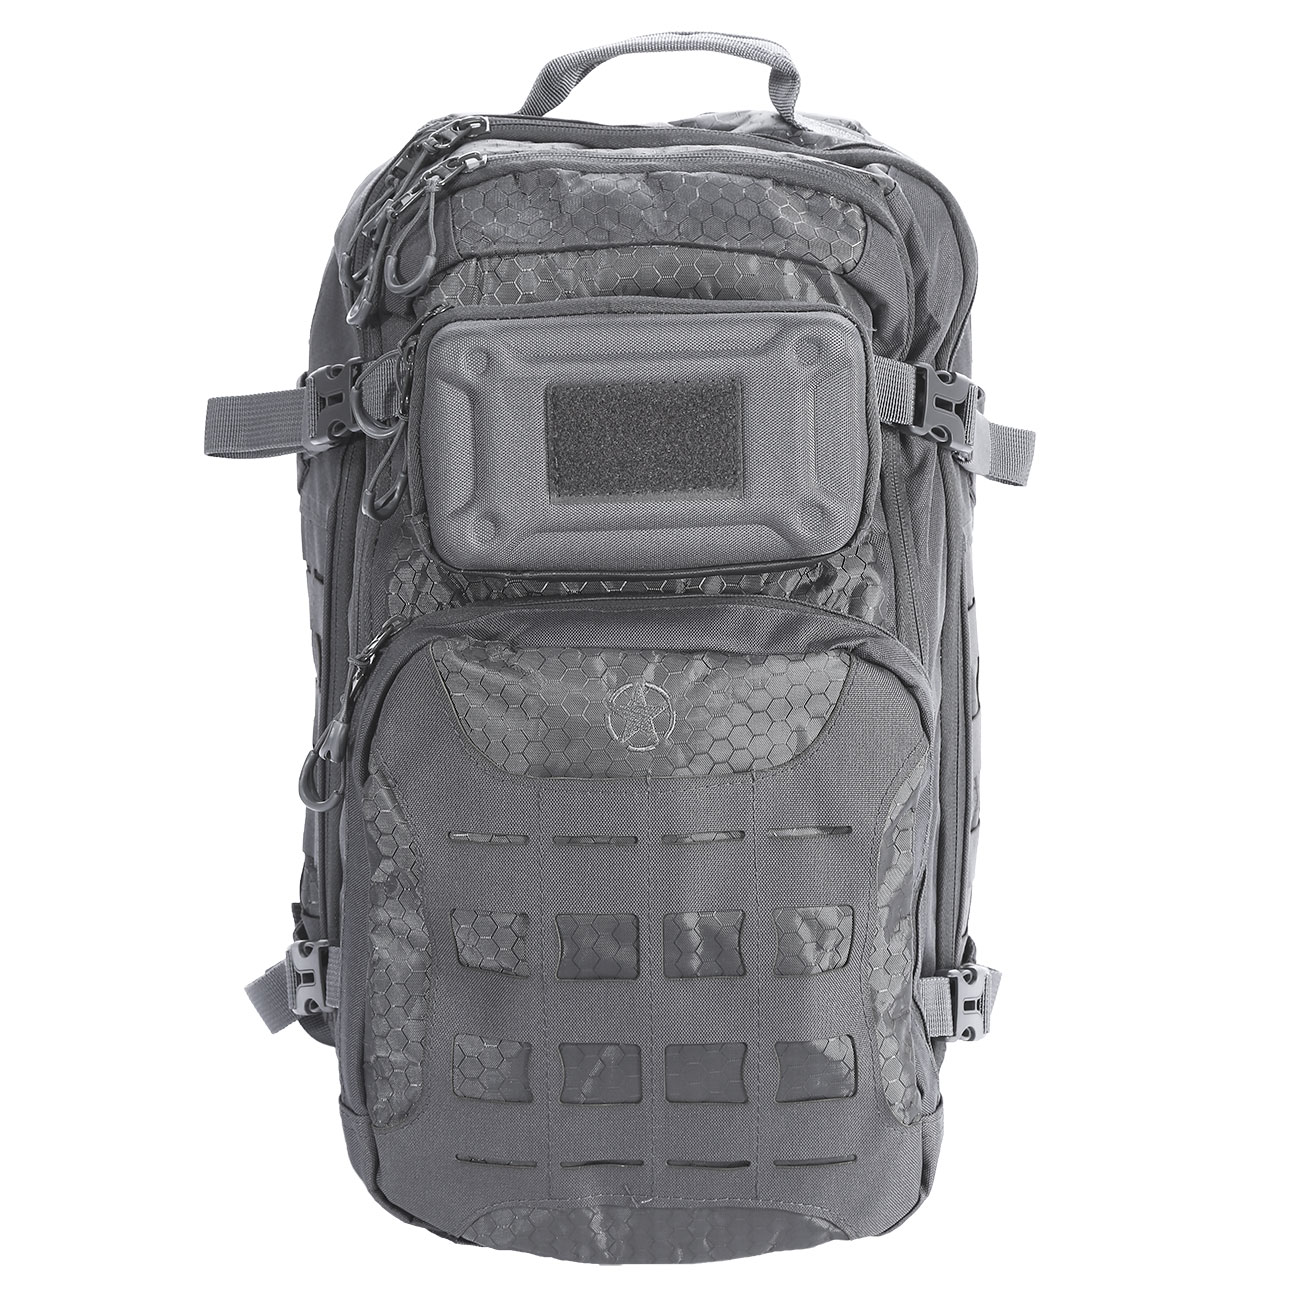 MFH Rucksack Operation I 30 Liter urban grau 5